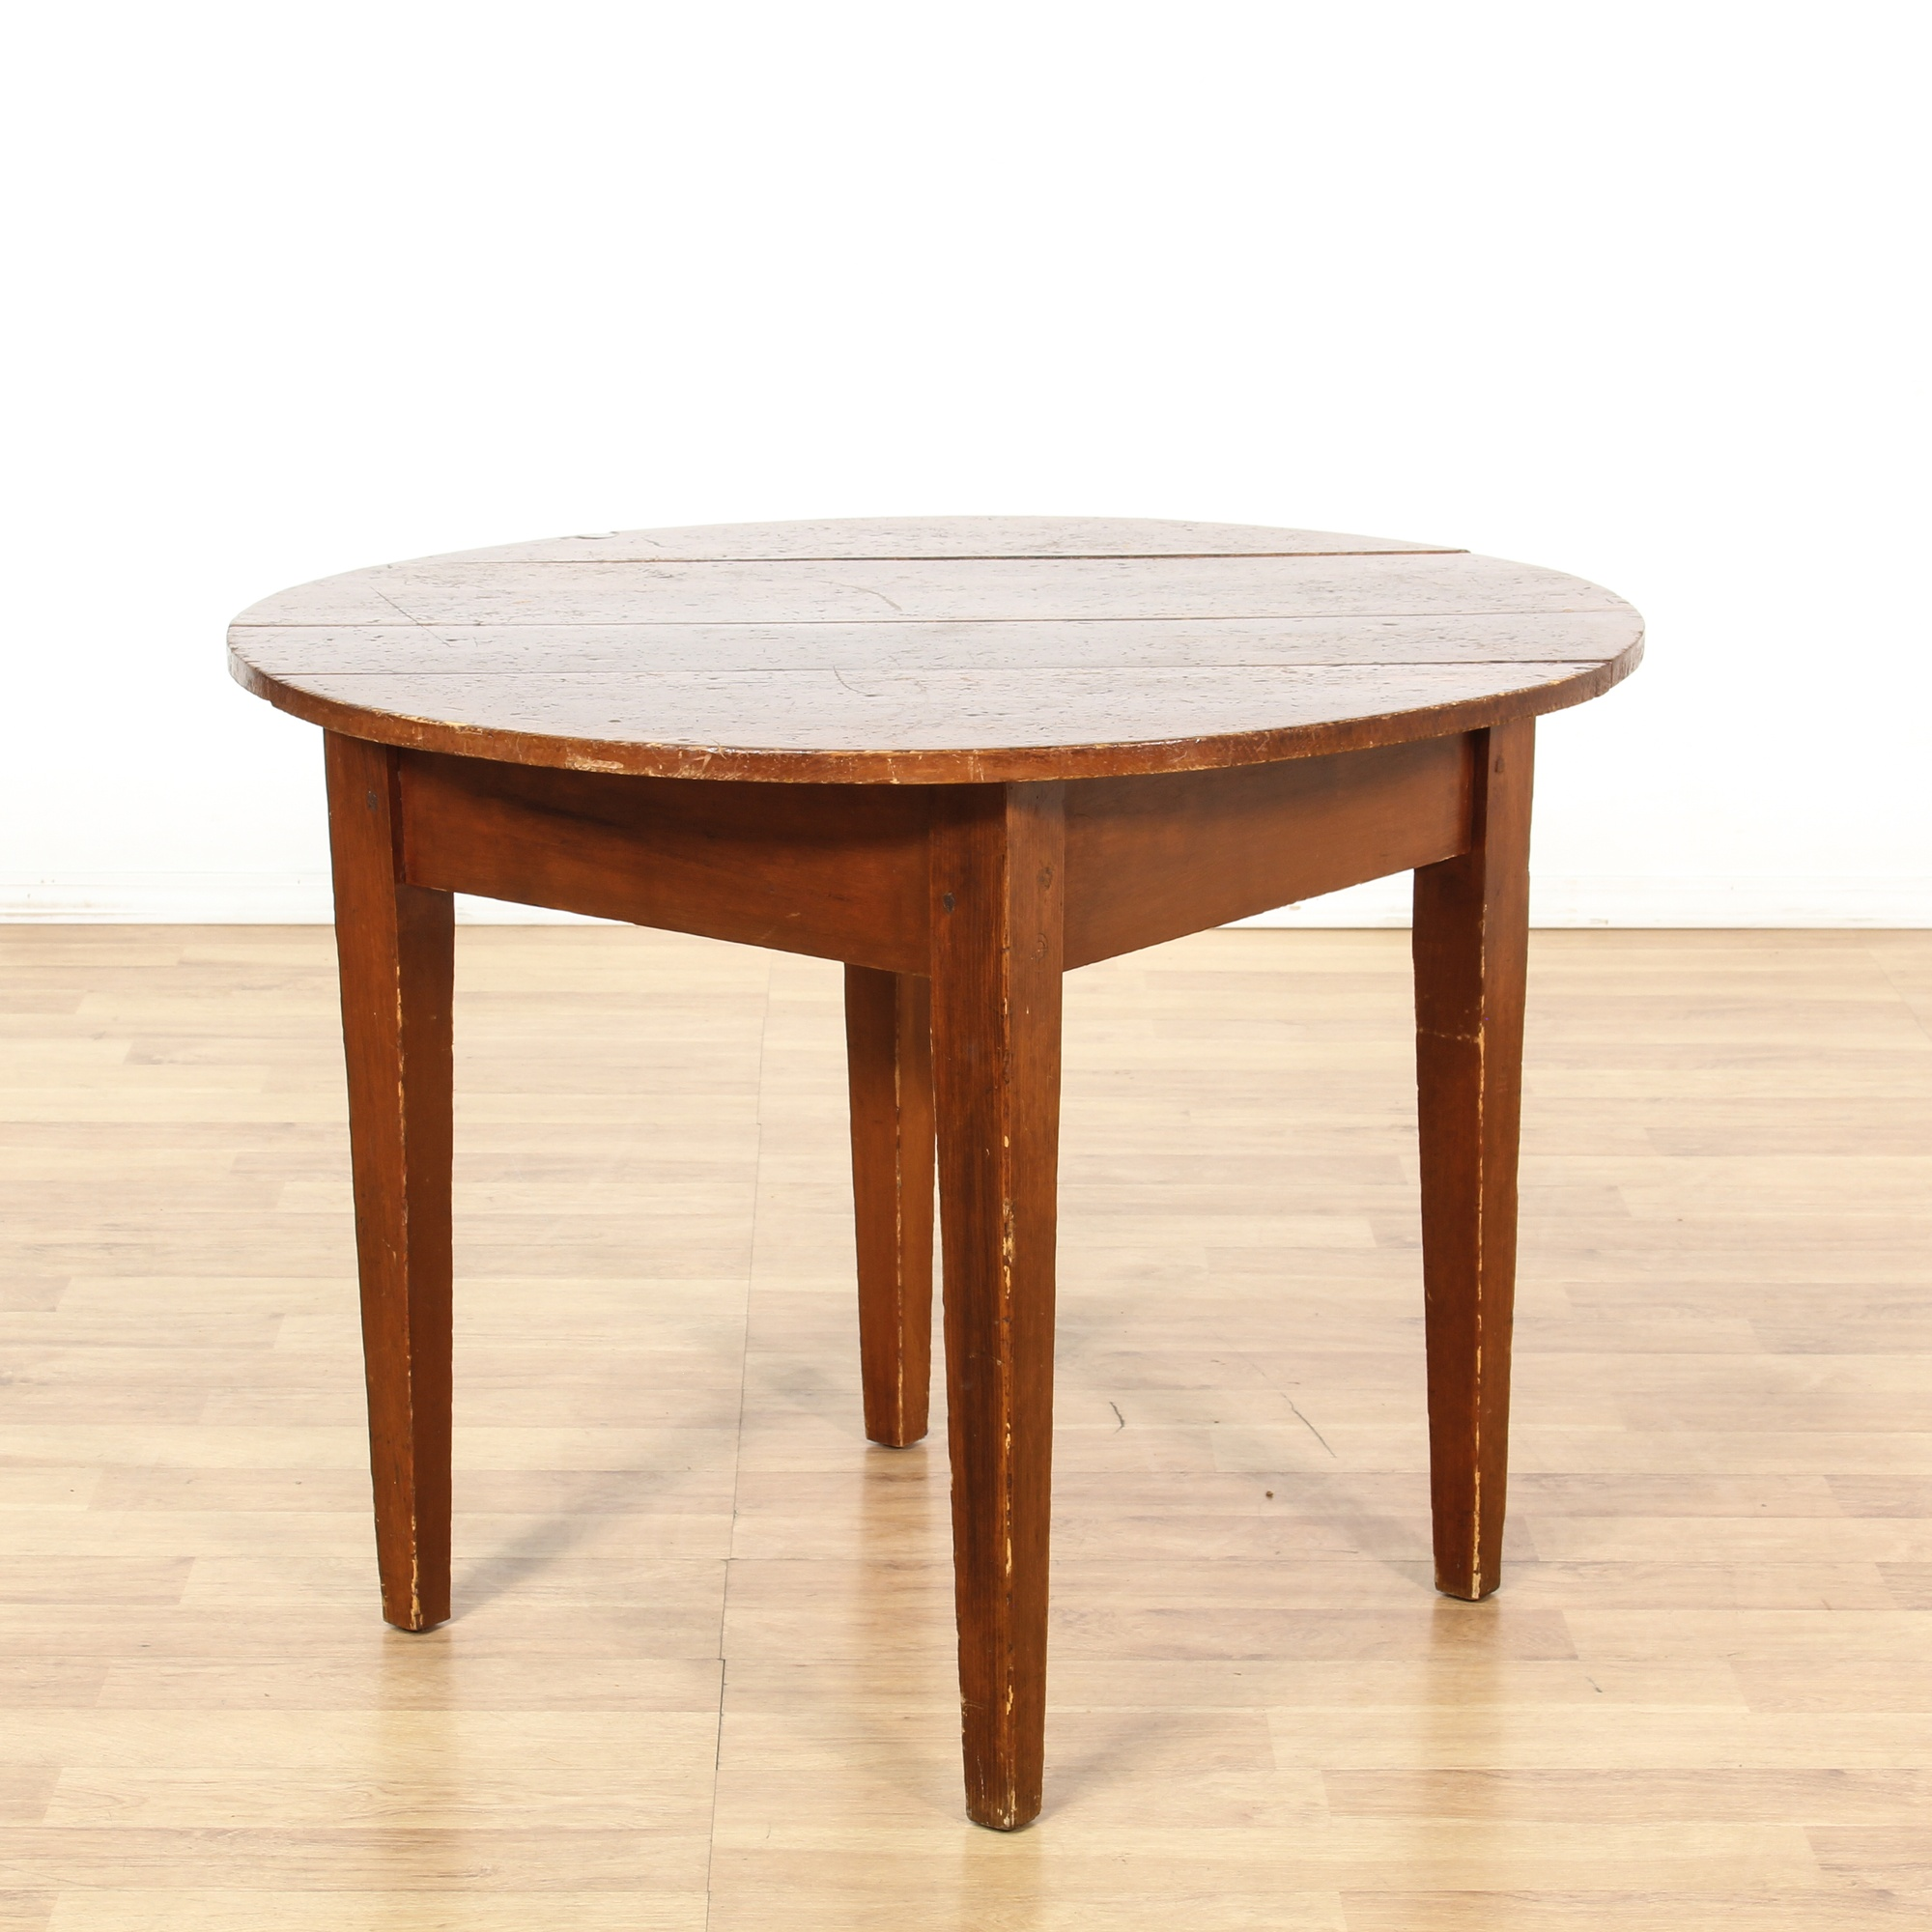 Dining Room Furniture San Diego: Round Rustic Farmhouse Breakfast Dining Table